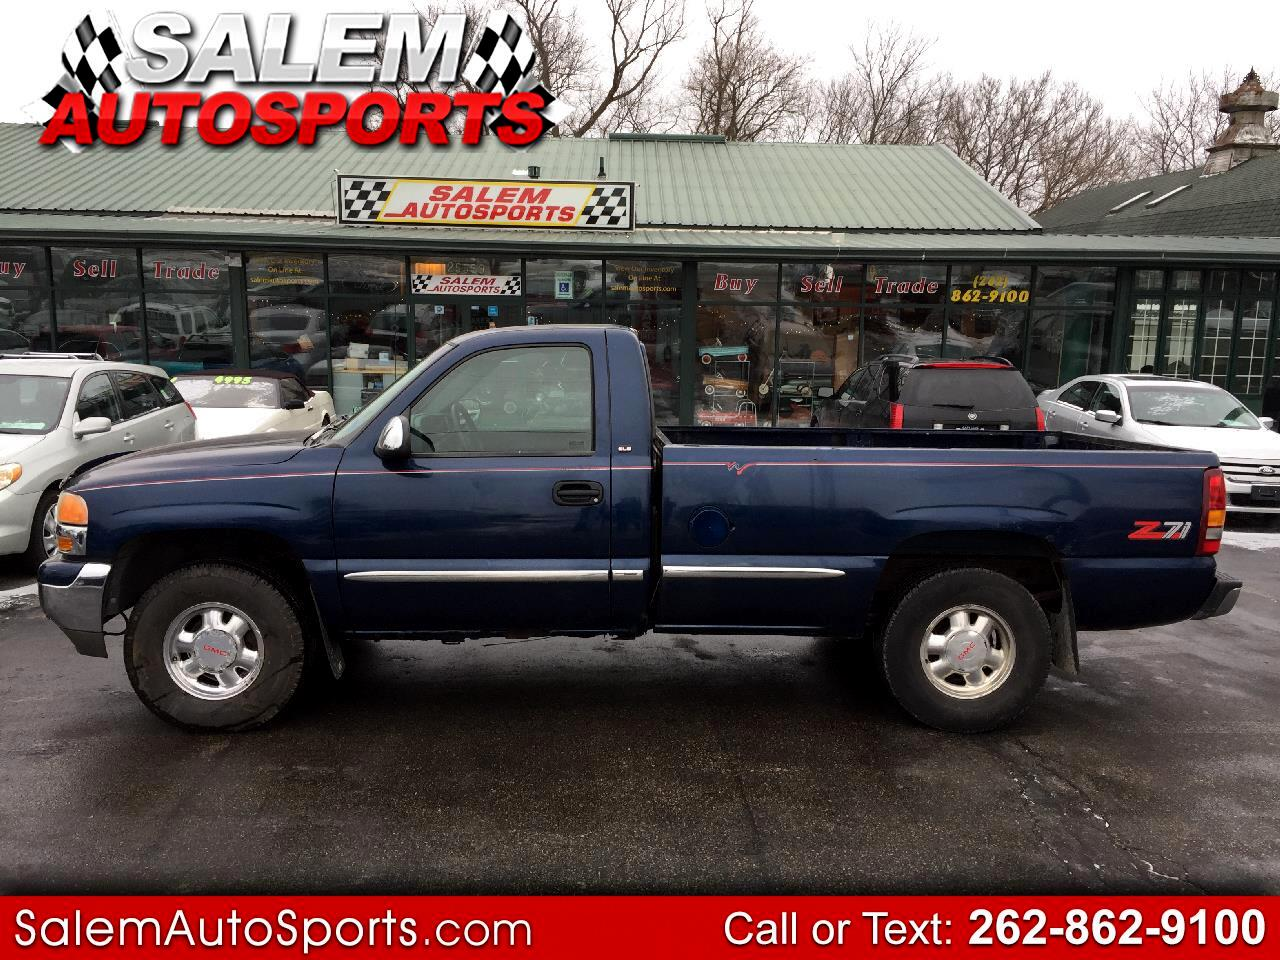 1999 GMC New Sierra 1500 Reg Cab 133.0